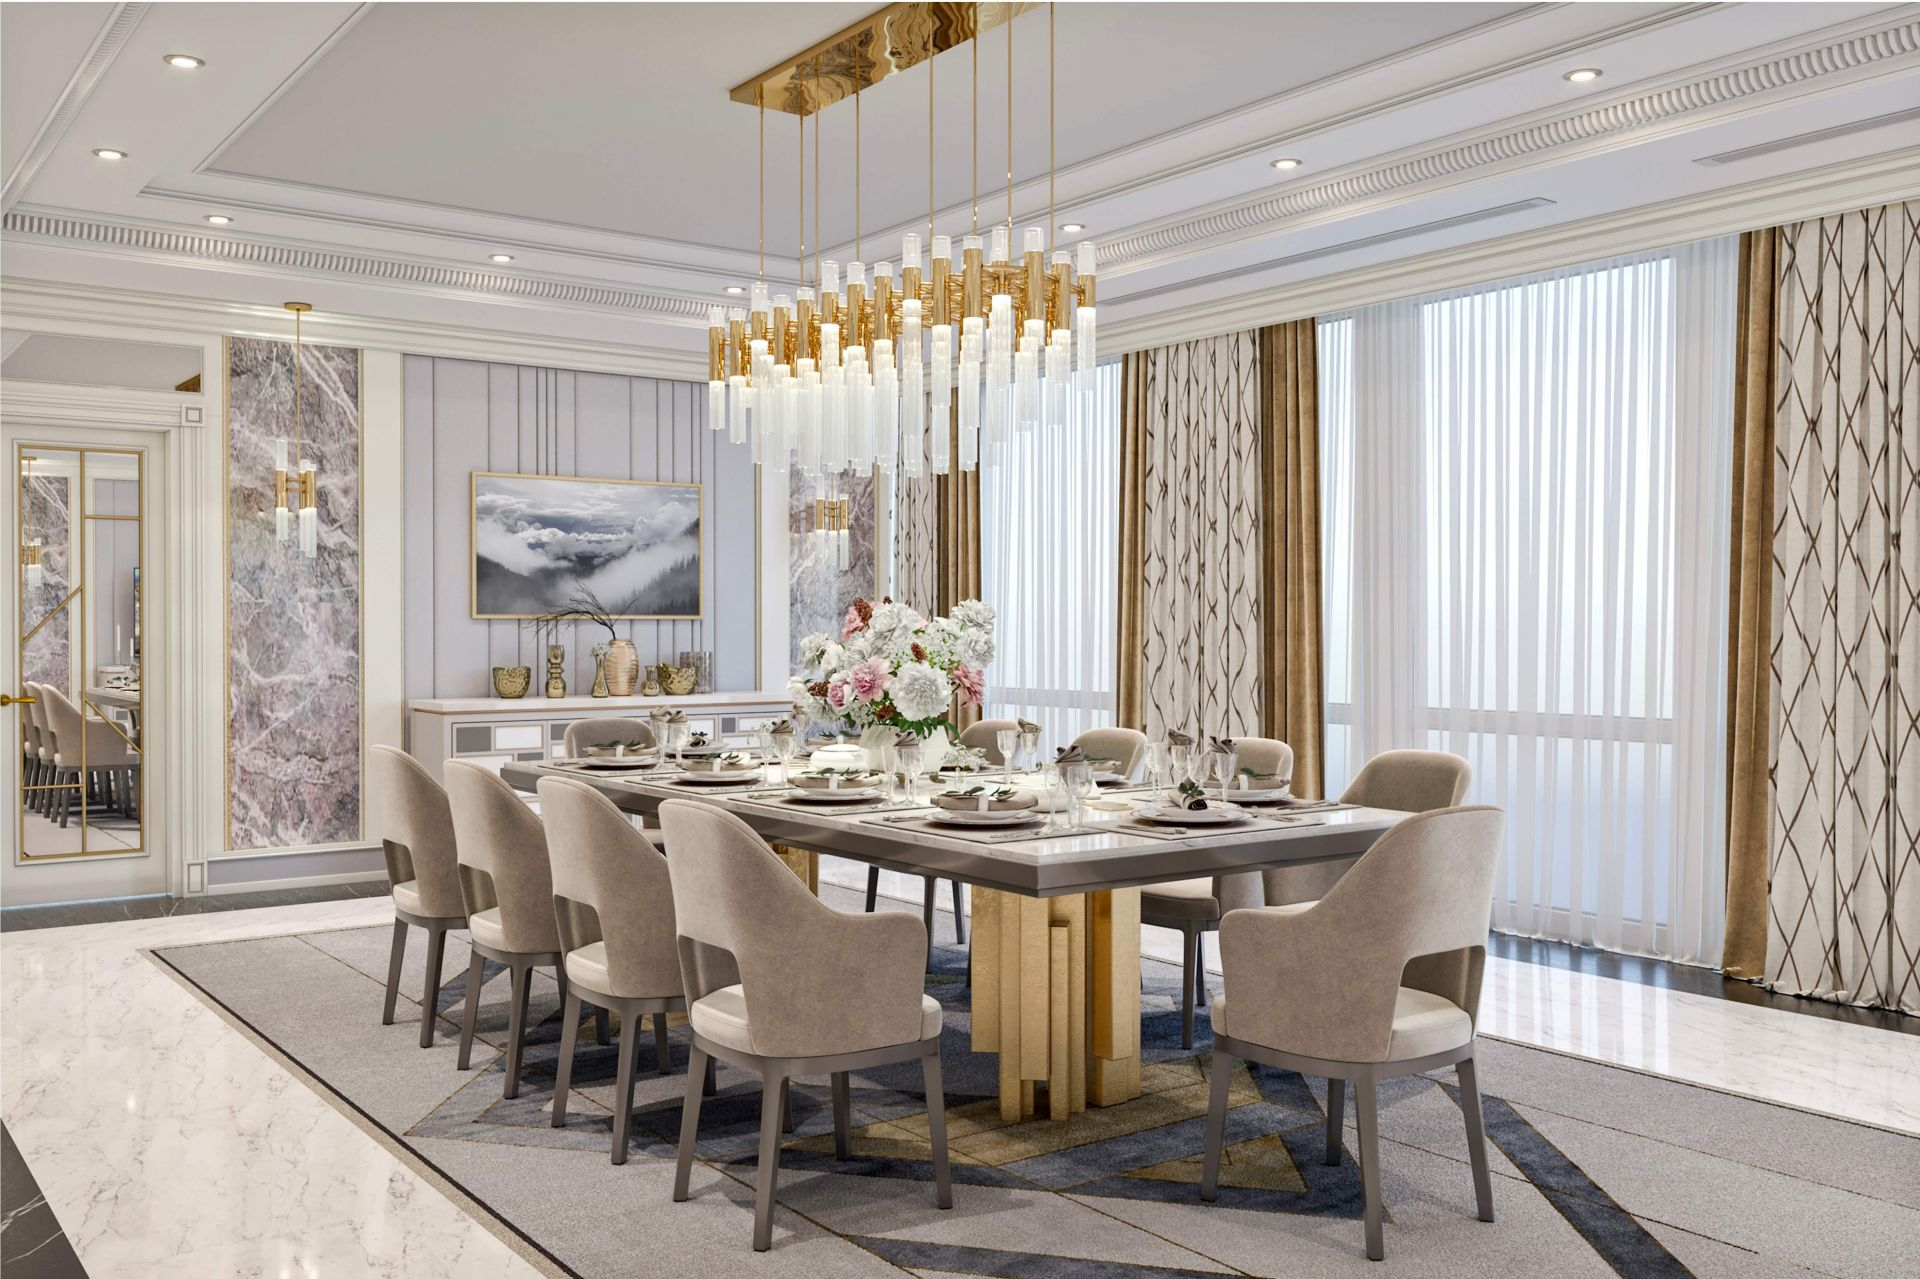 Design project of the living-dining room in the Hilton Hotel